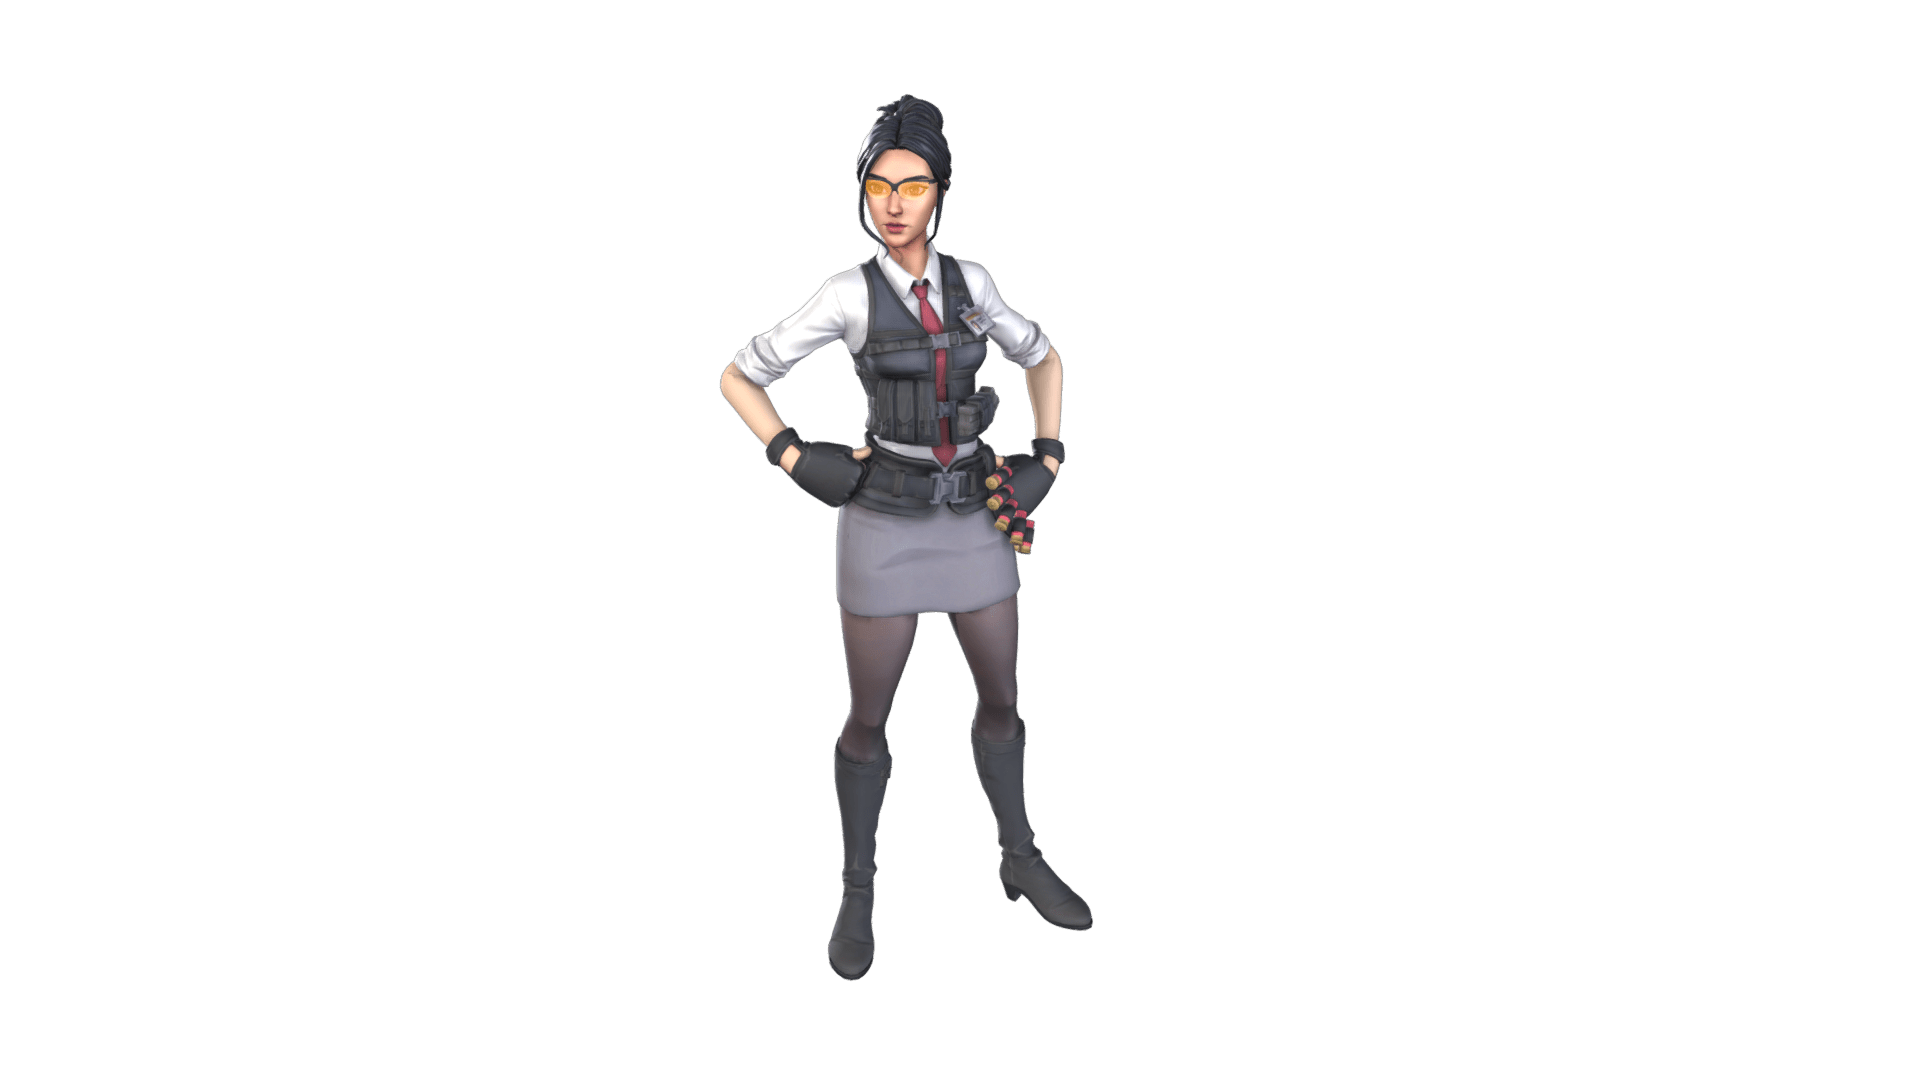 Fortnite Rook Outfits Fortnite Skins